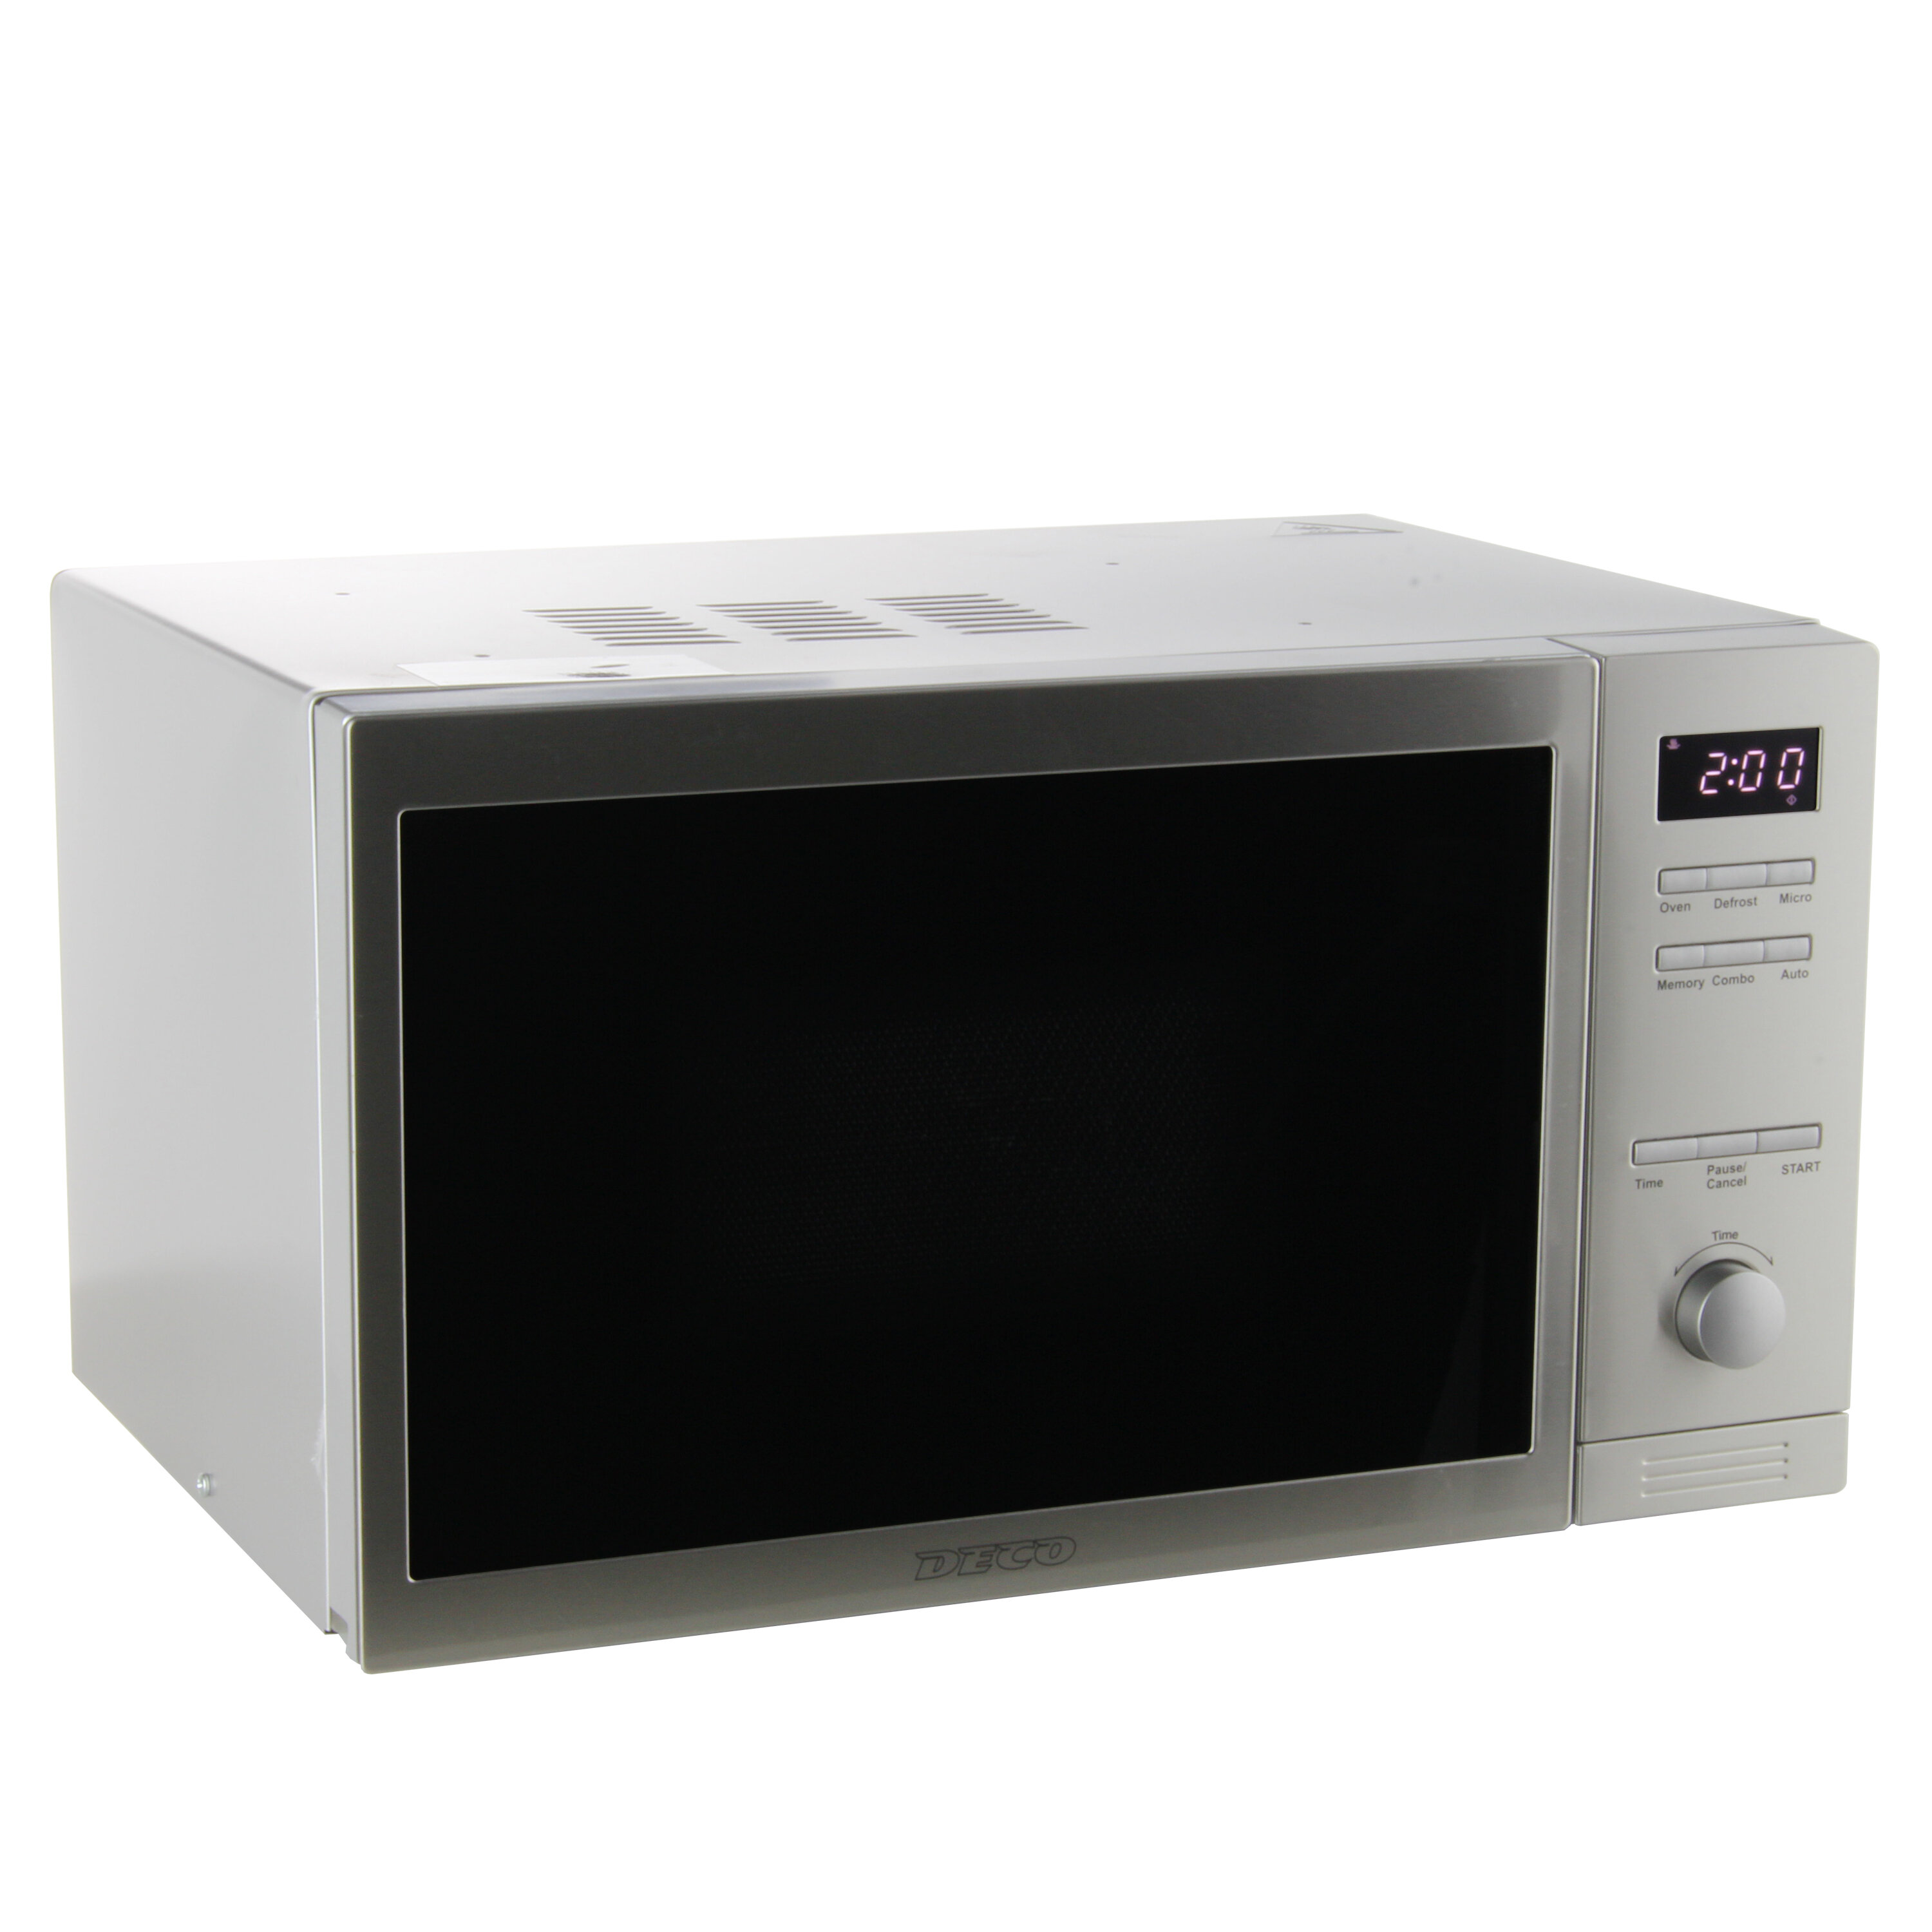 Equator Deco Combo 19 0 8 Cu Ft Countertop Convection Microwave With Memory Cooking Function Reviews Wayfair